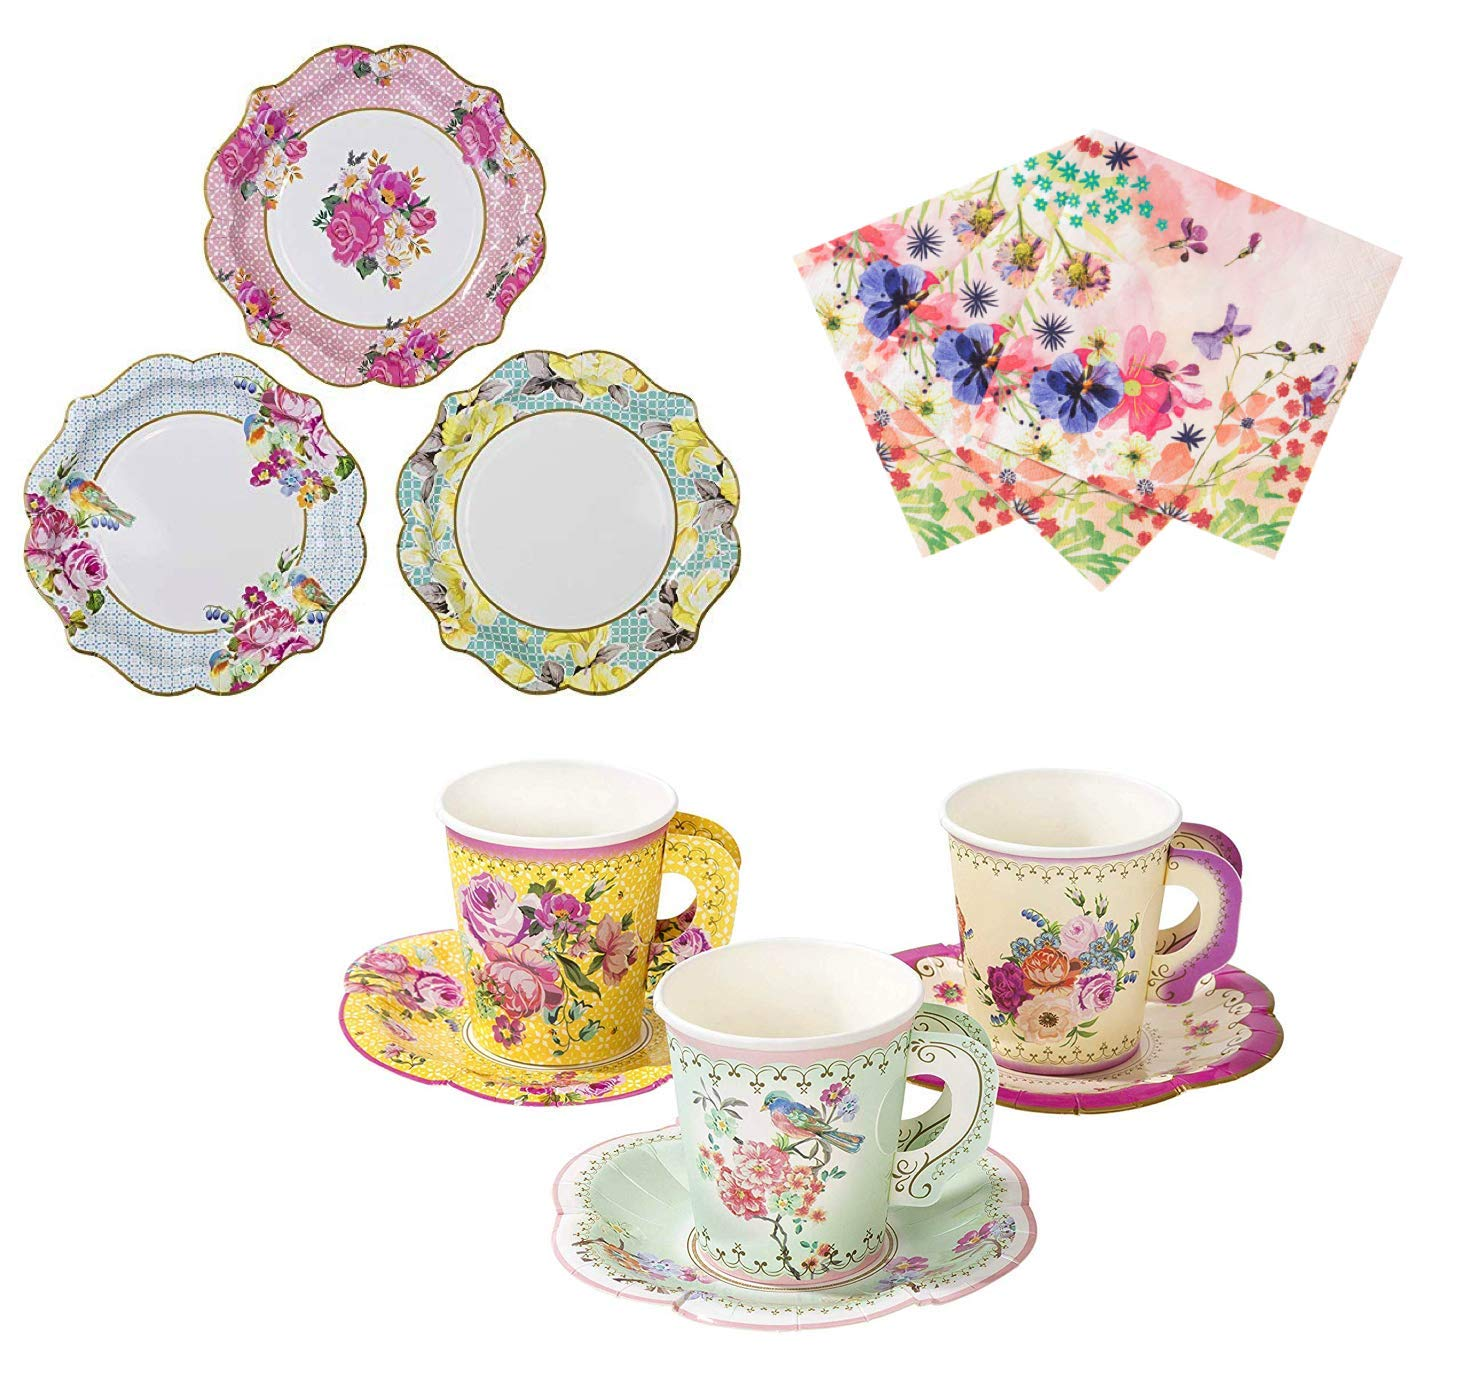 Talking Tables Vintage Tea Party Supplies | Floral Paper Party Plates, Napkins, Tea Cups and Saucer Sets | Great for Tea Parties, Weddings, Bridal Showers, Baby Showers and Birthday Parties